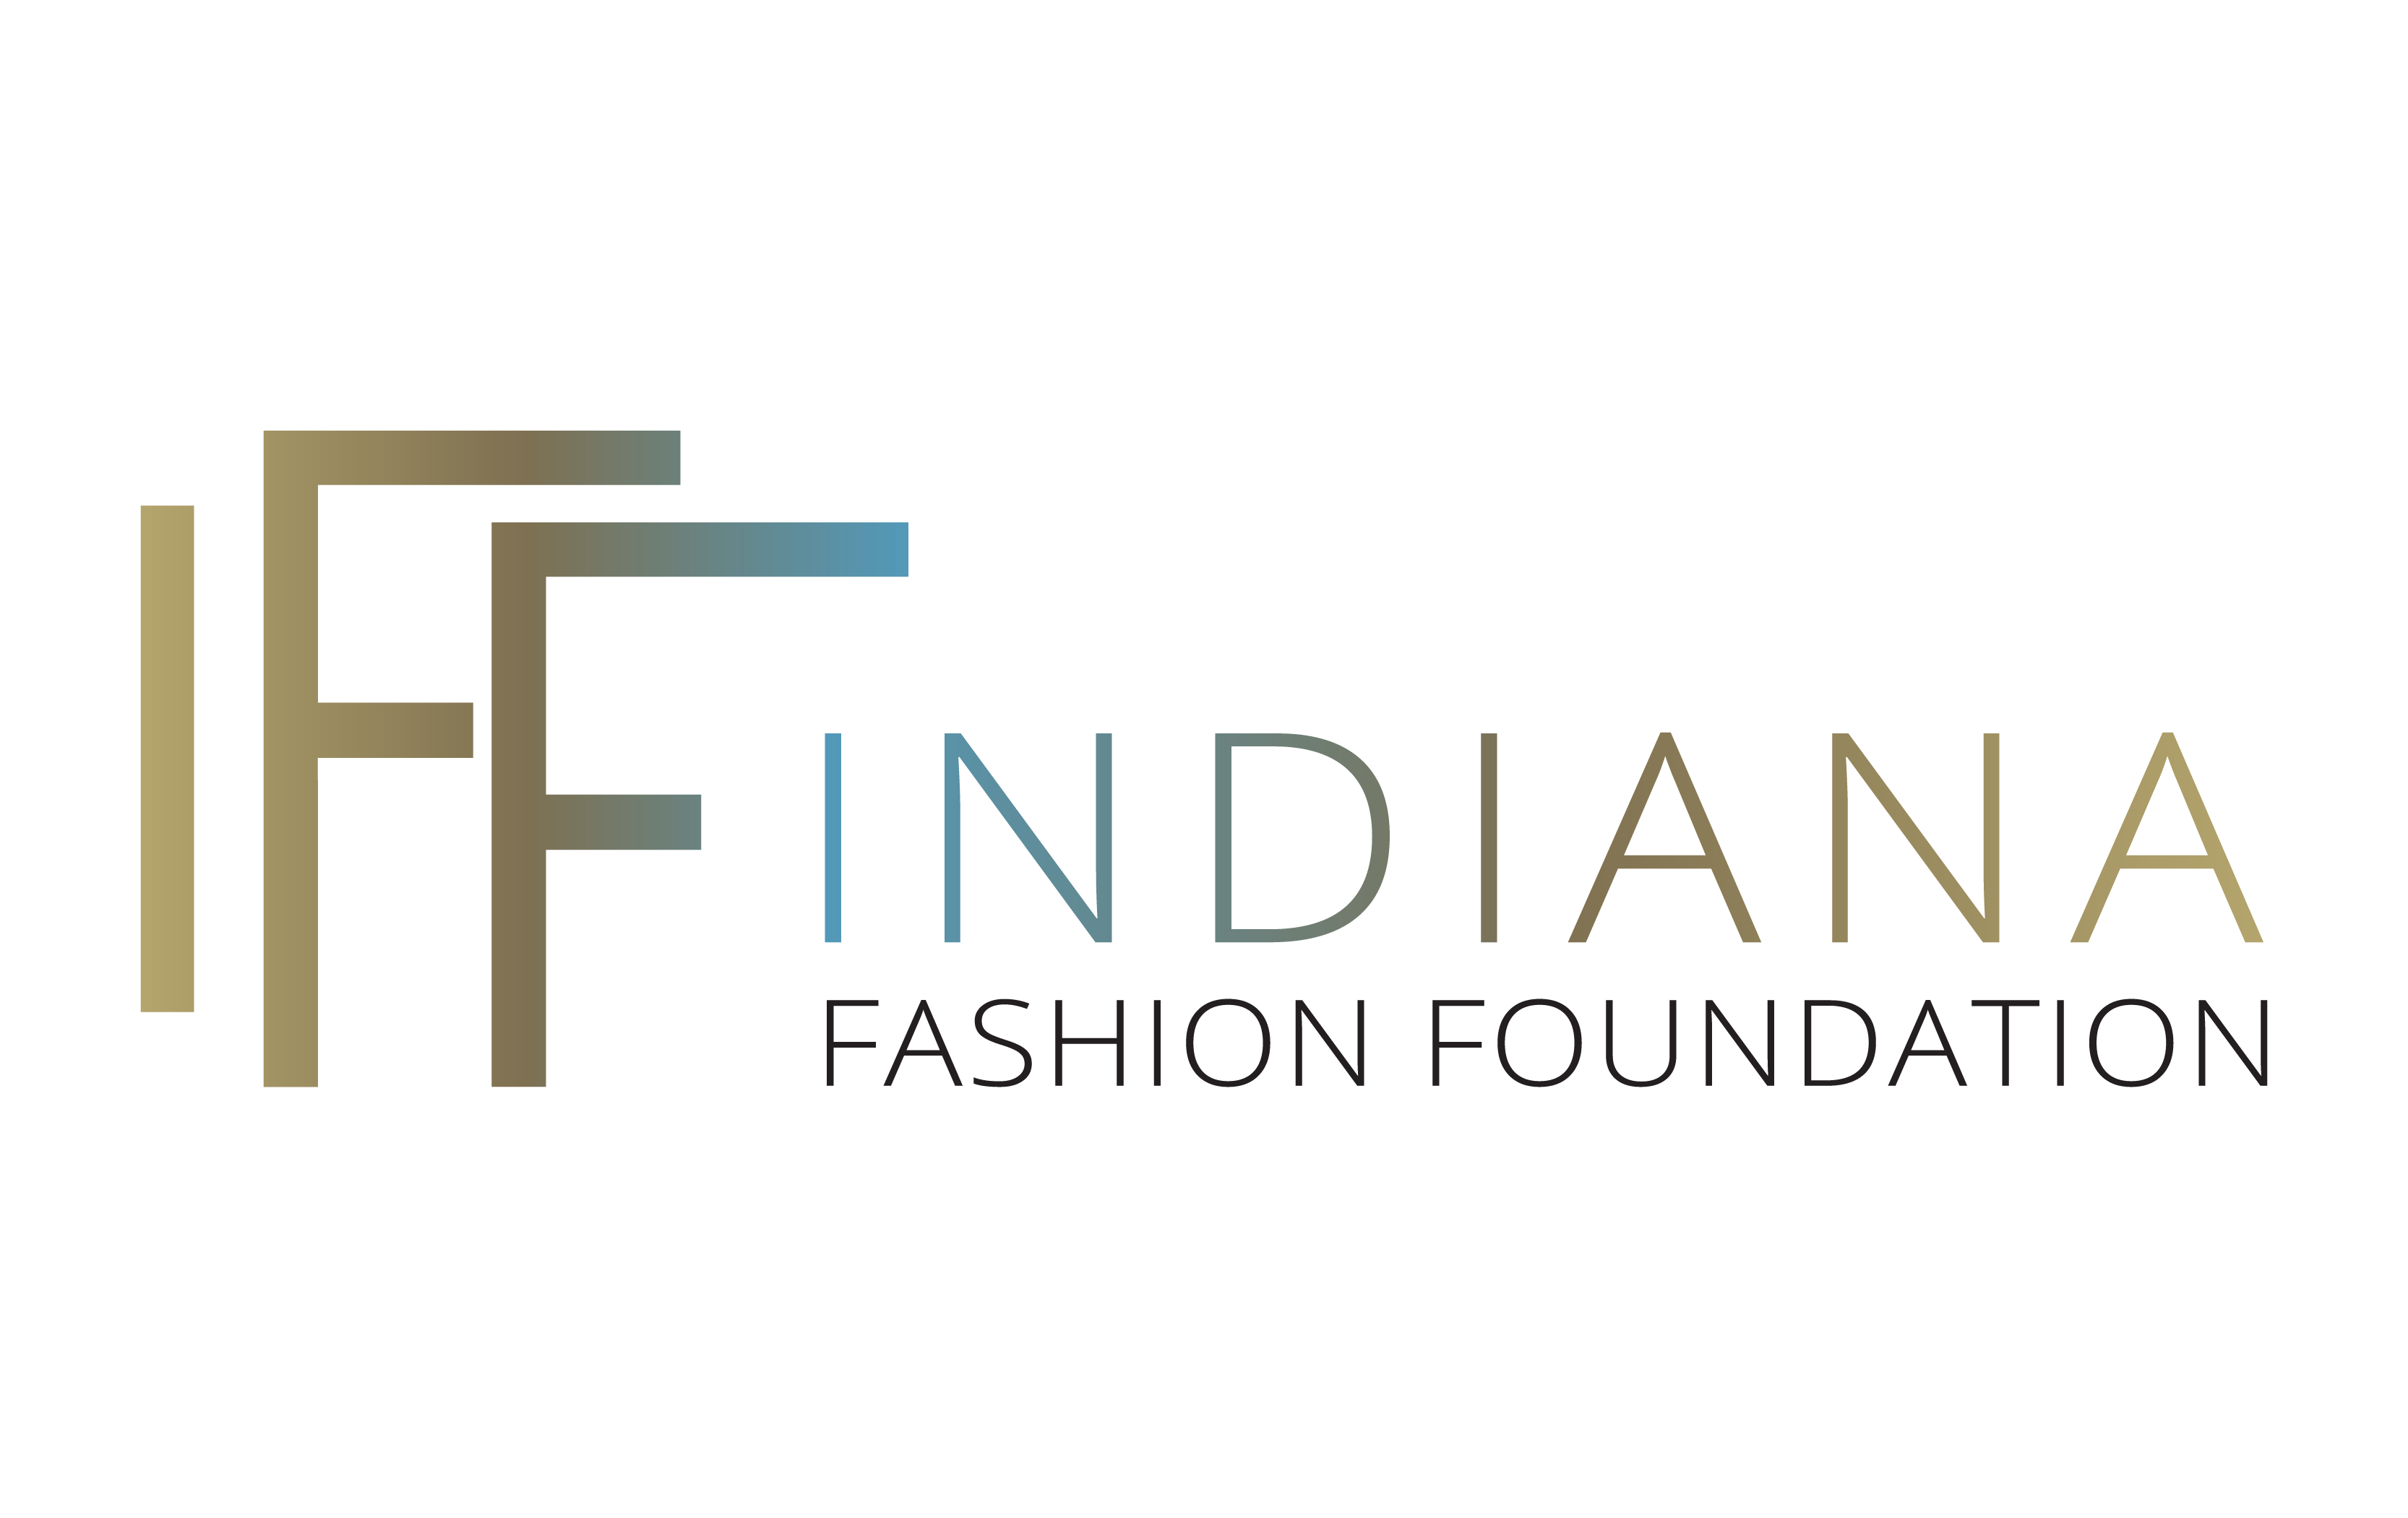 The full logo of Indiana Fashion Foundation. With IFF in a bigger font in an ombre effect of gold to blue, next to the words Indiana (being in the same ombre effect but from blue to gold) Fashion Foundation (black colored font)